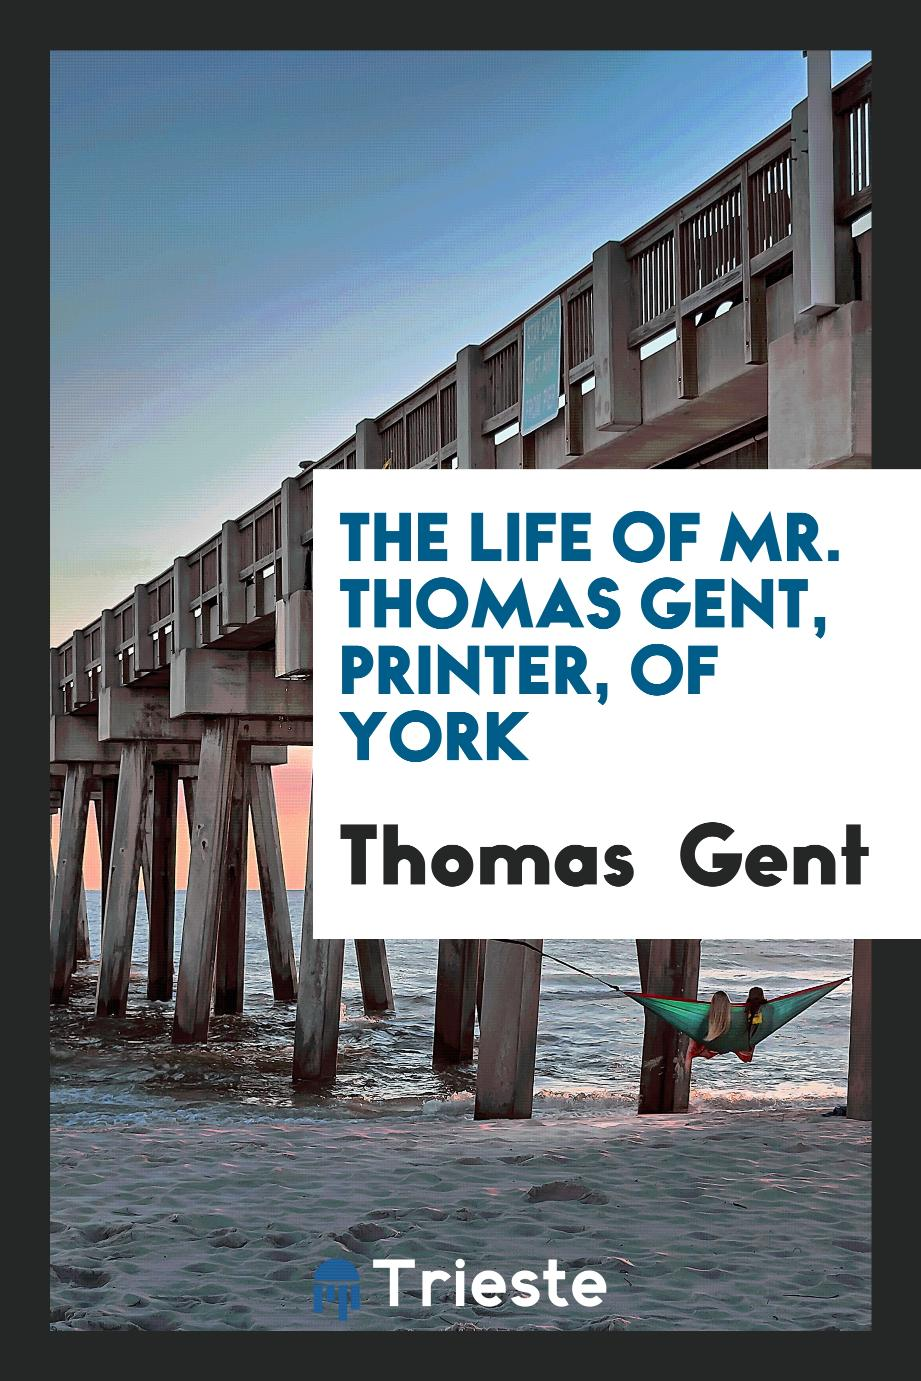 The Life of Mr. Thomas Gent, Printer, of York